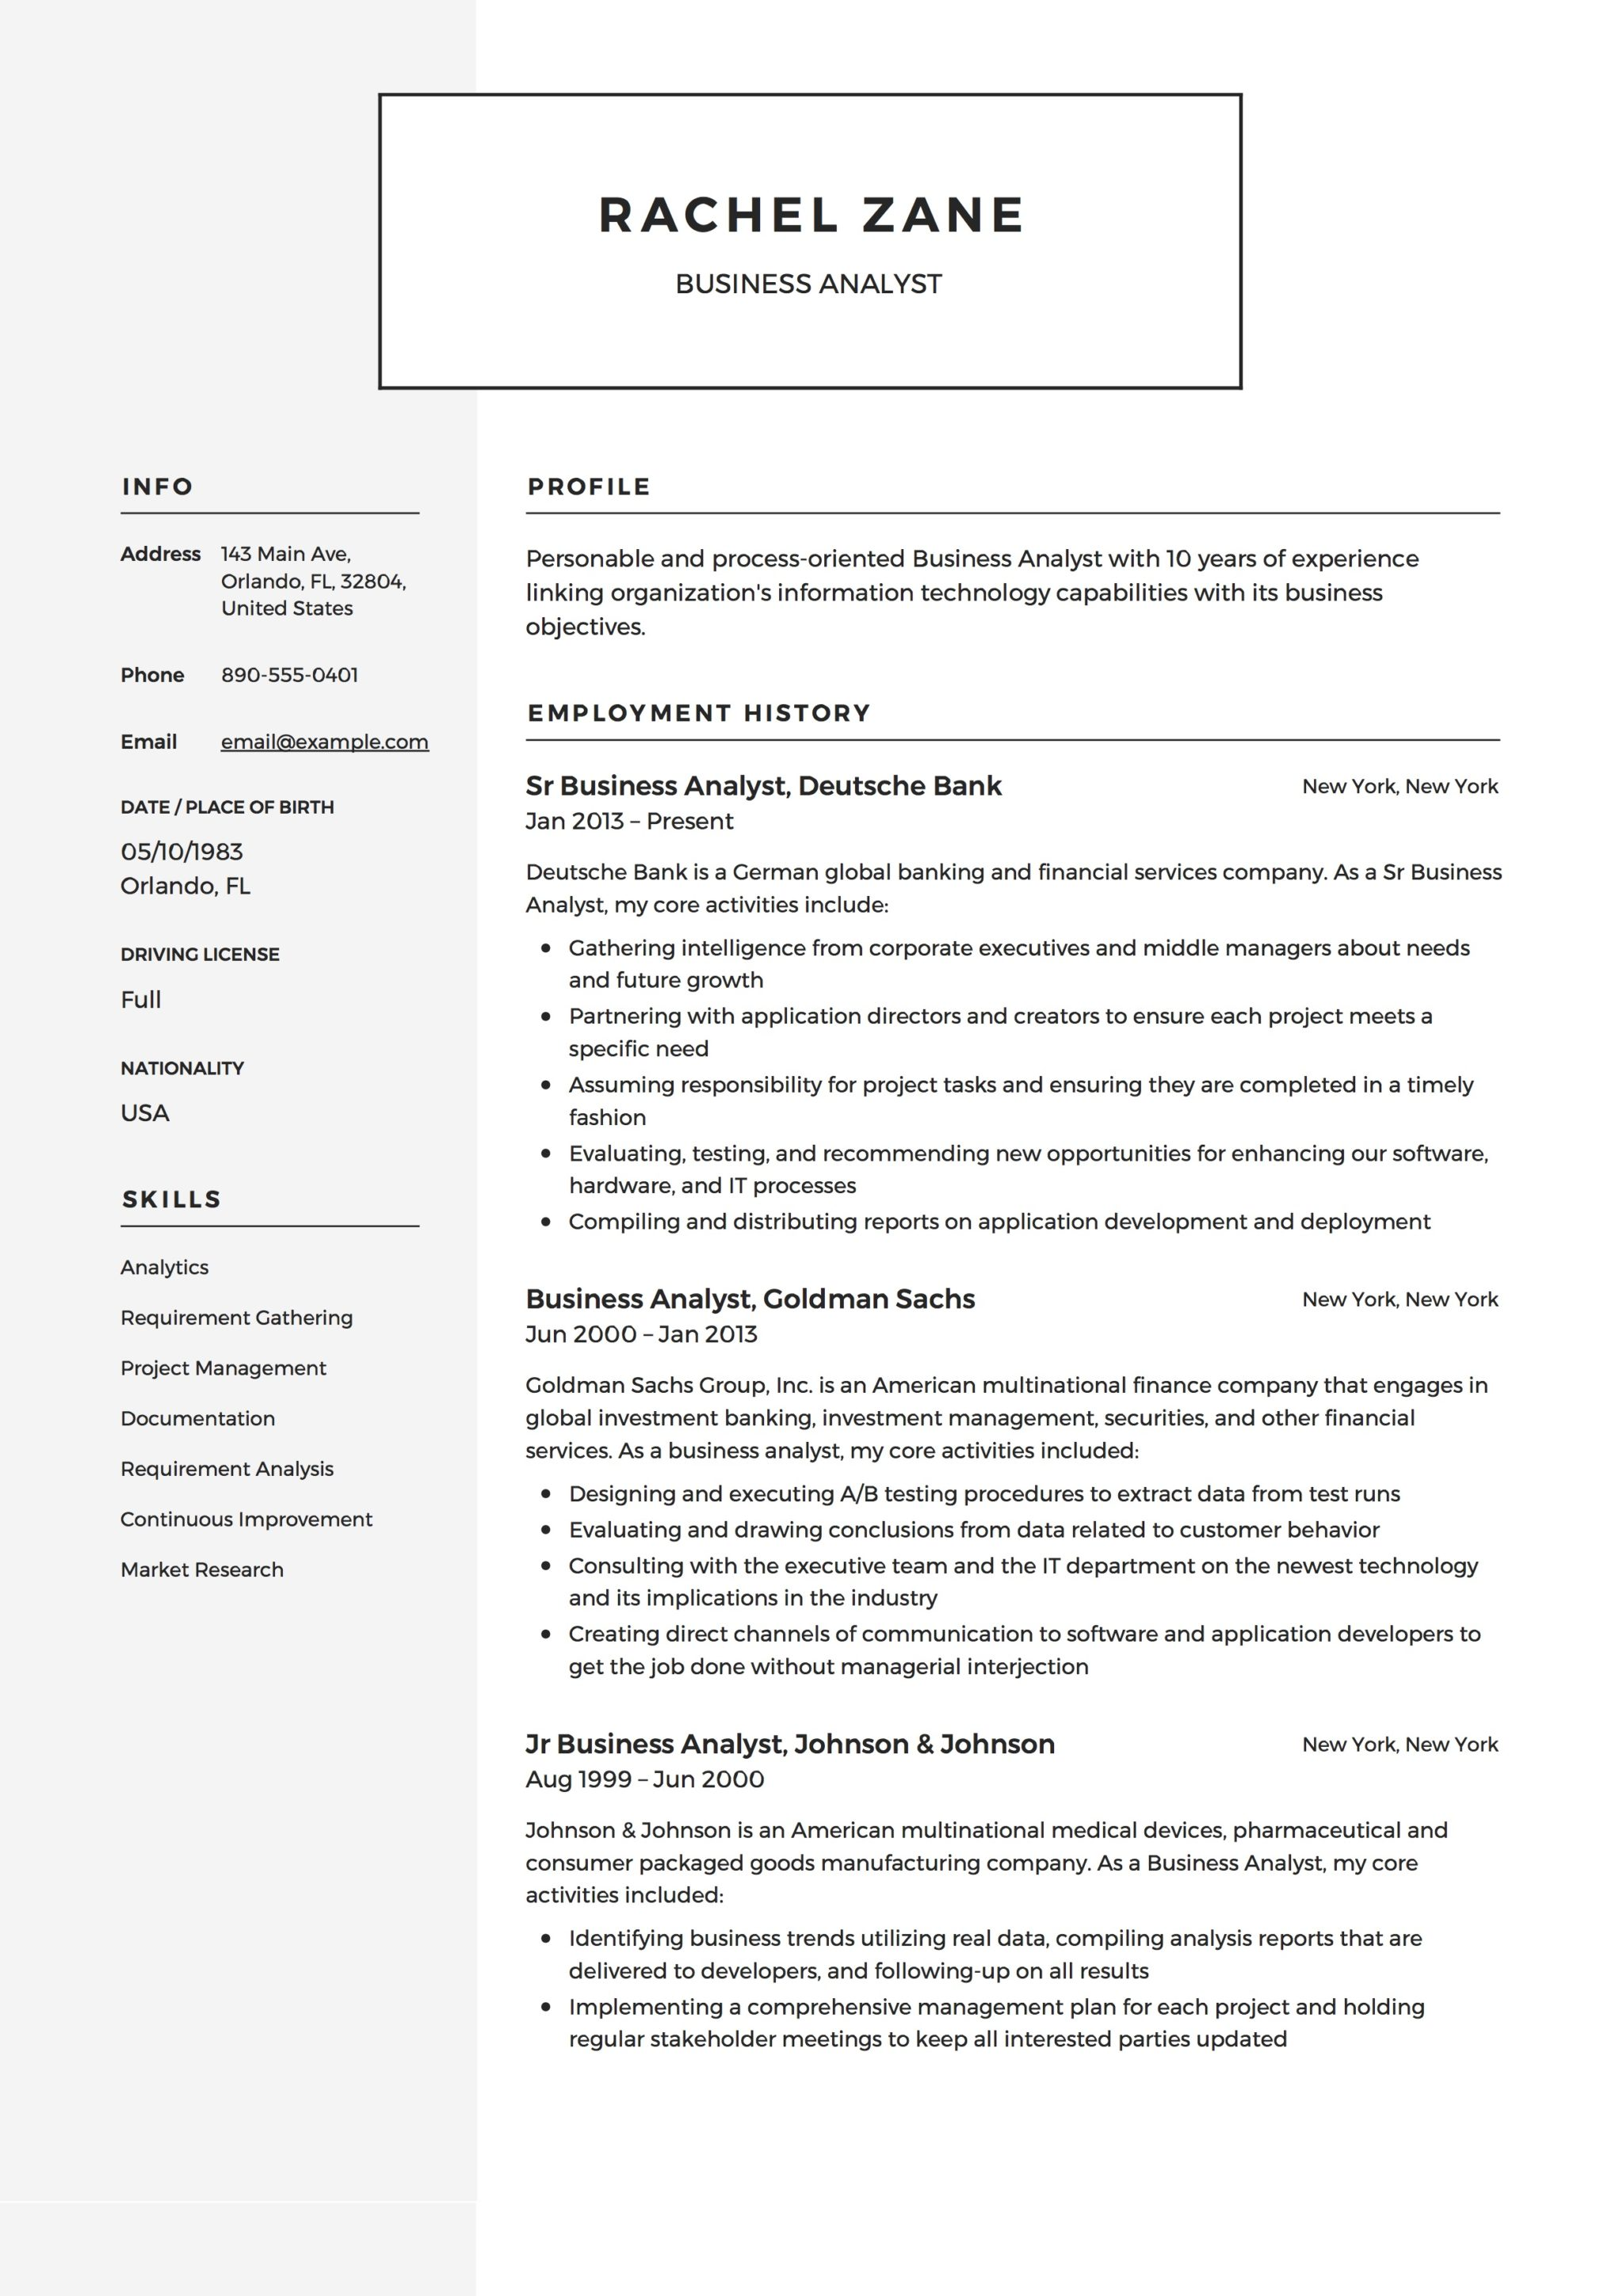 12 business analyst resume samples 2018 free downloads business analyst resume sample flashek Choice Image